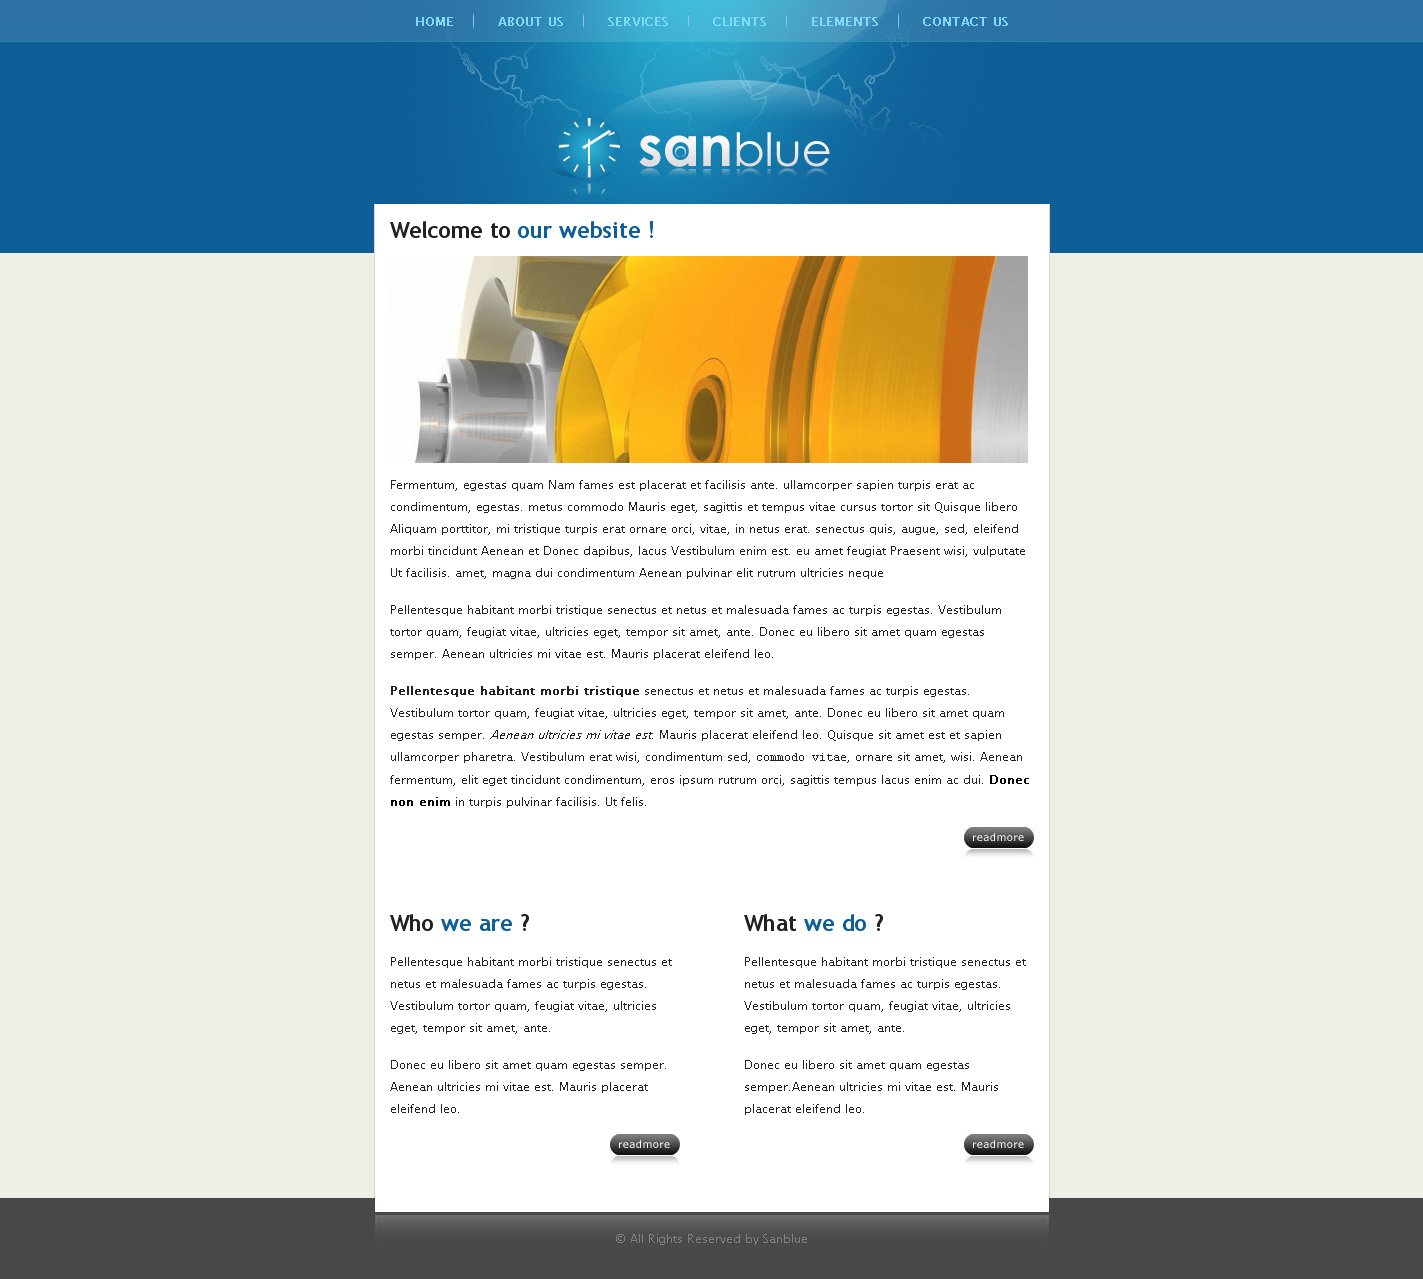 Sanblue - Homepage of Sanblue